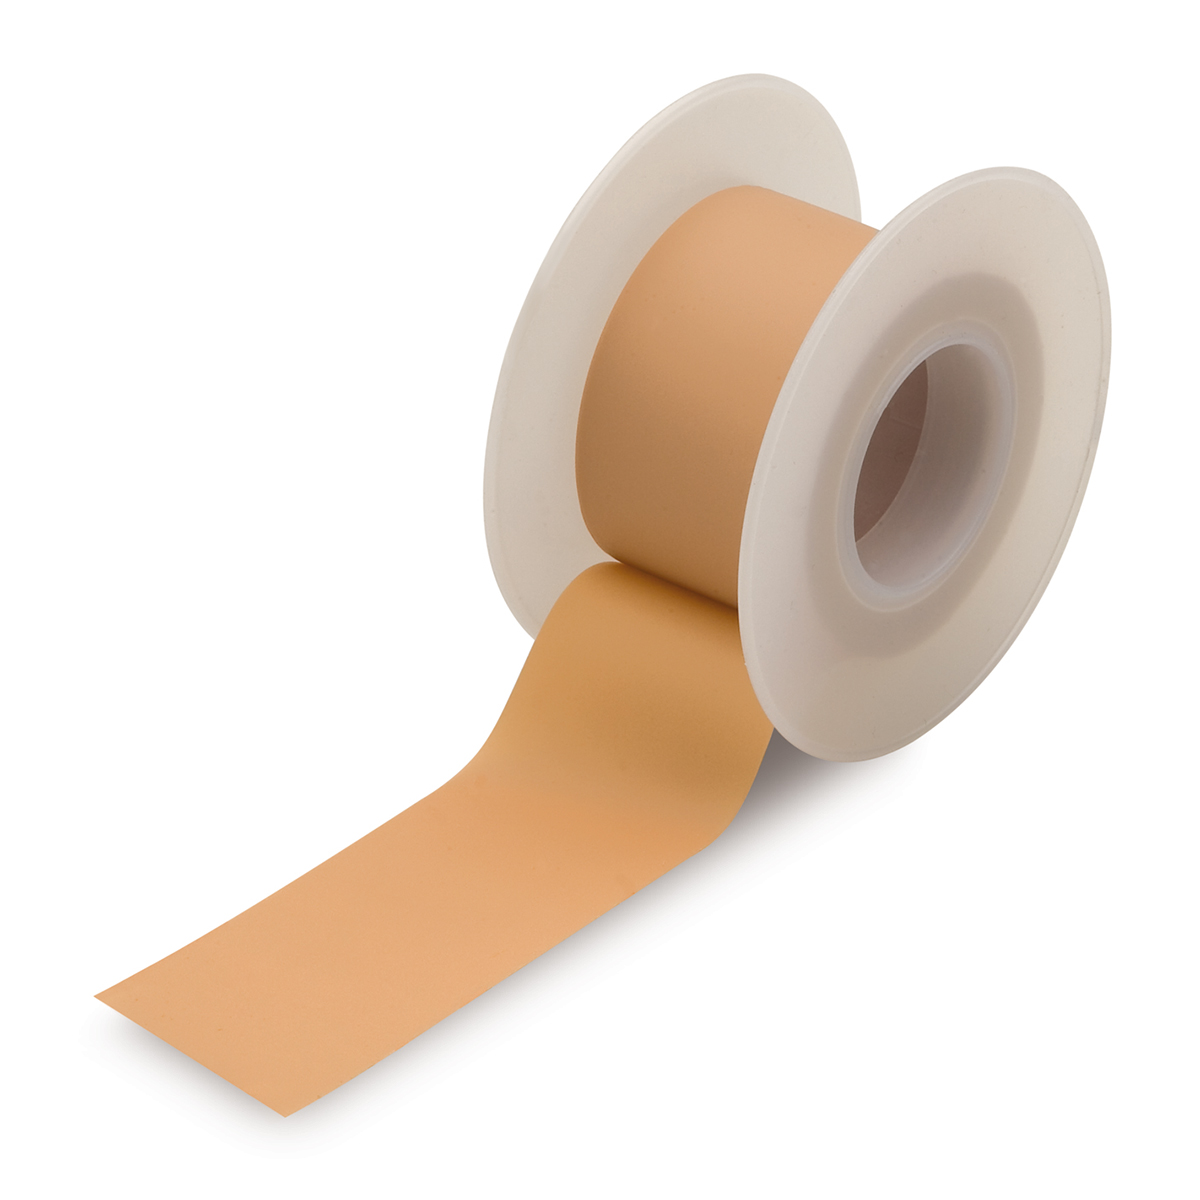 Pack of 12 2.5cm x 5m Waterproof Tape